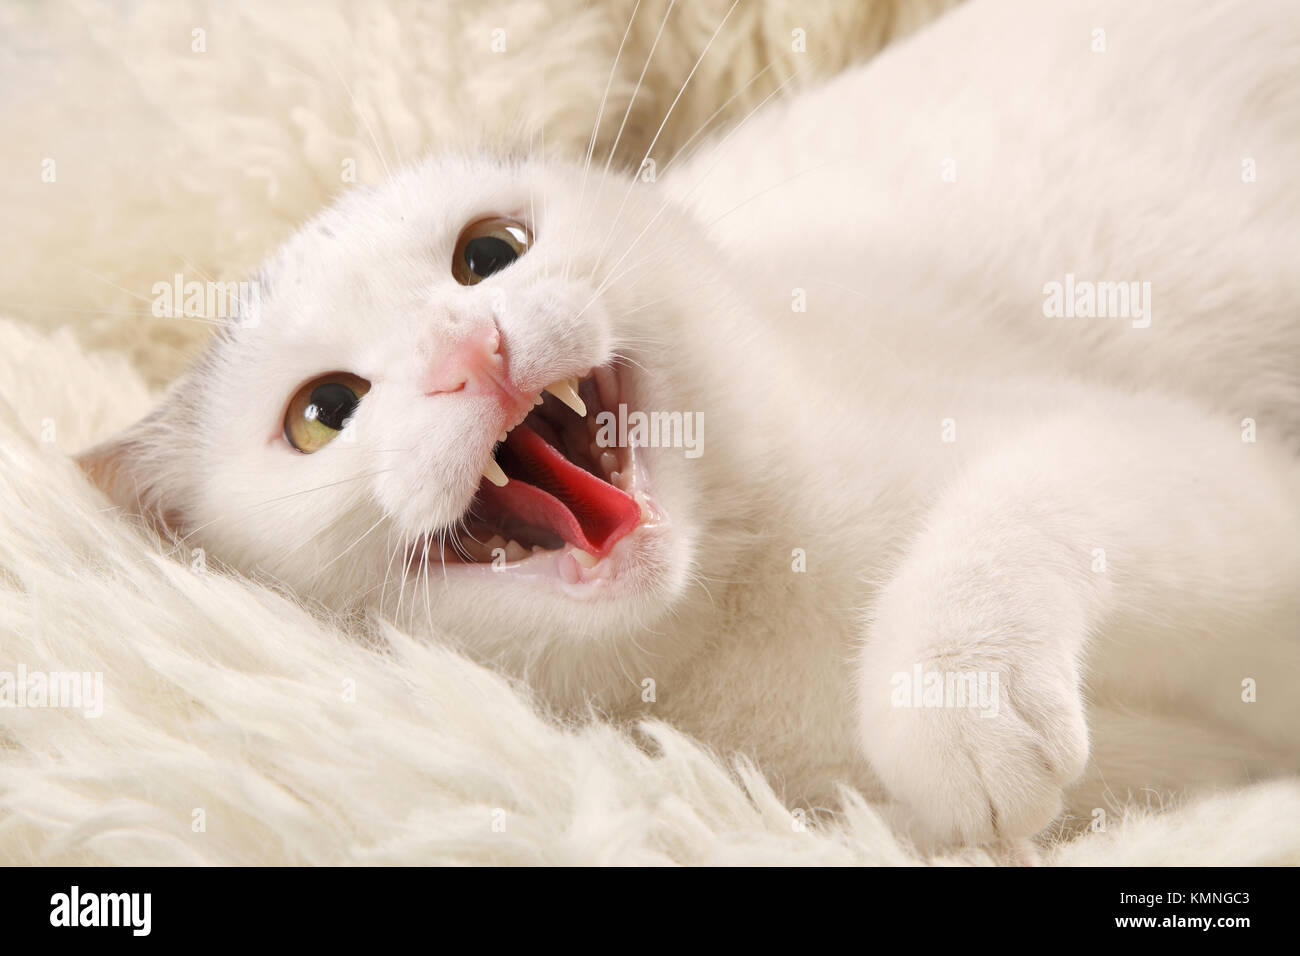 Aggressive white cat with an open mouth on a white sheepskin - Stock Image